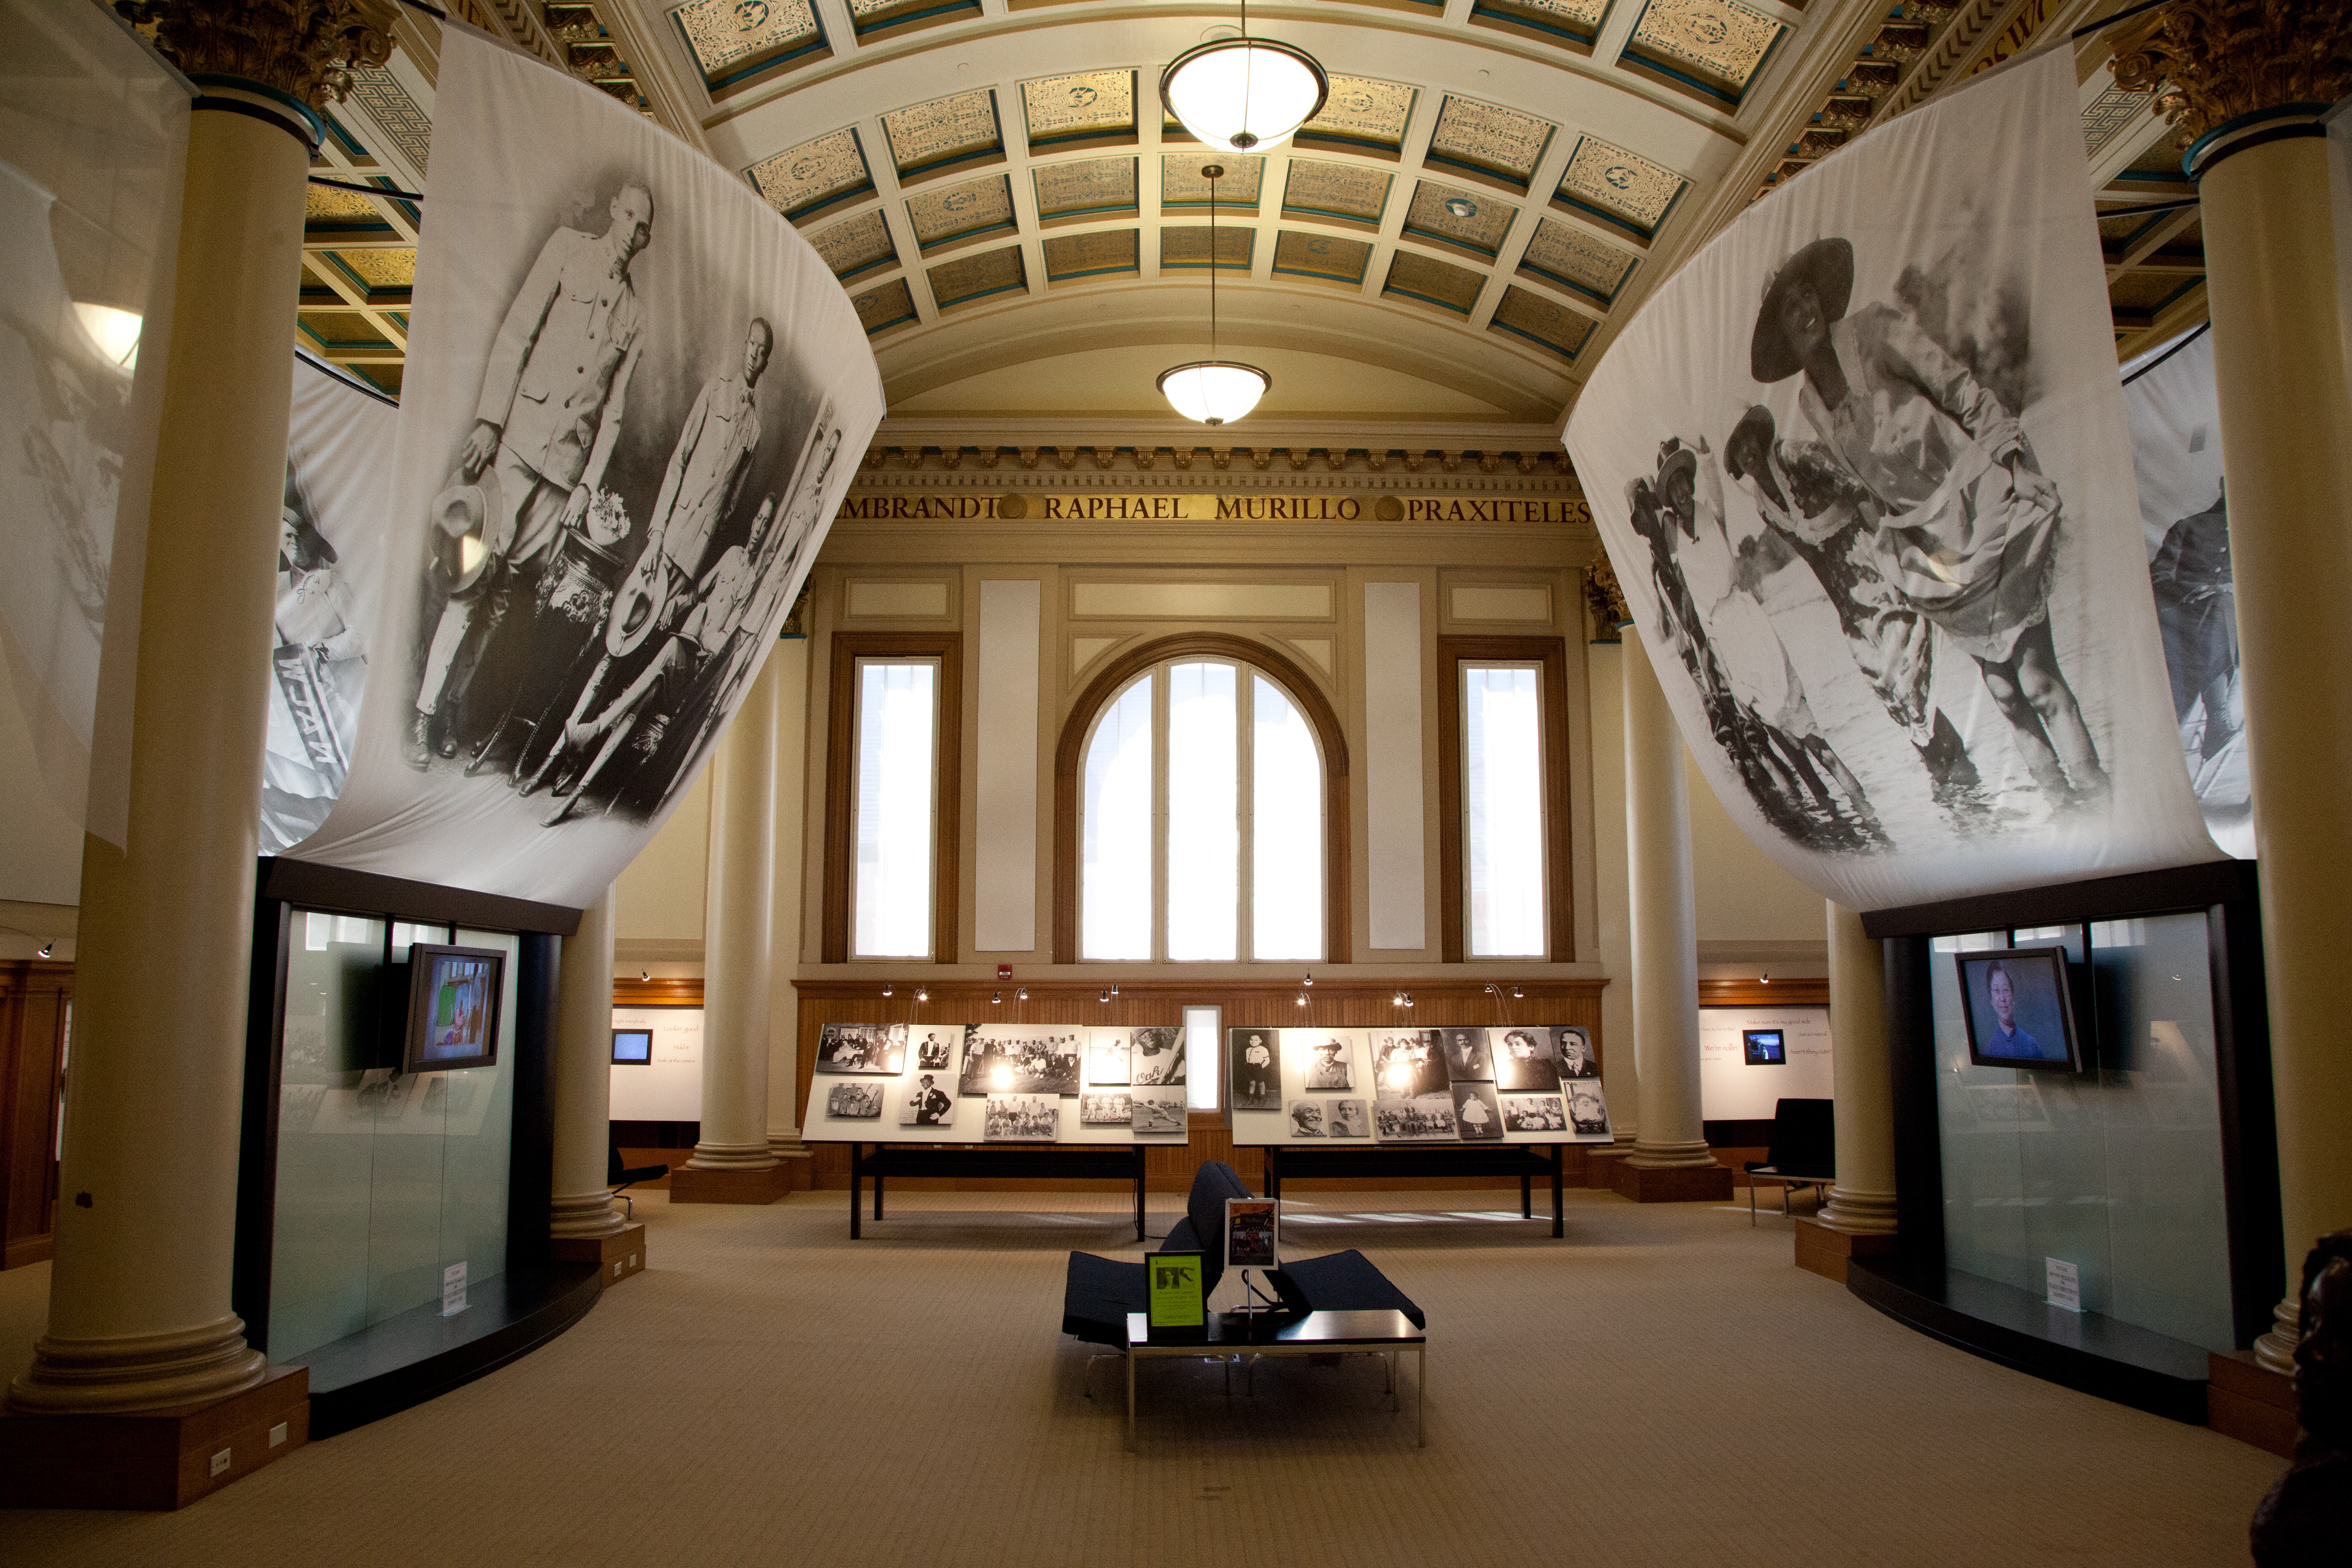 https://upload.wikimedia.org/wikipedia/commons/e/e7/African_American_Museum_Oakland_Library-35.jpg